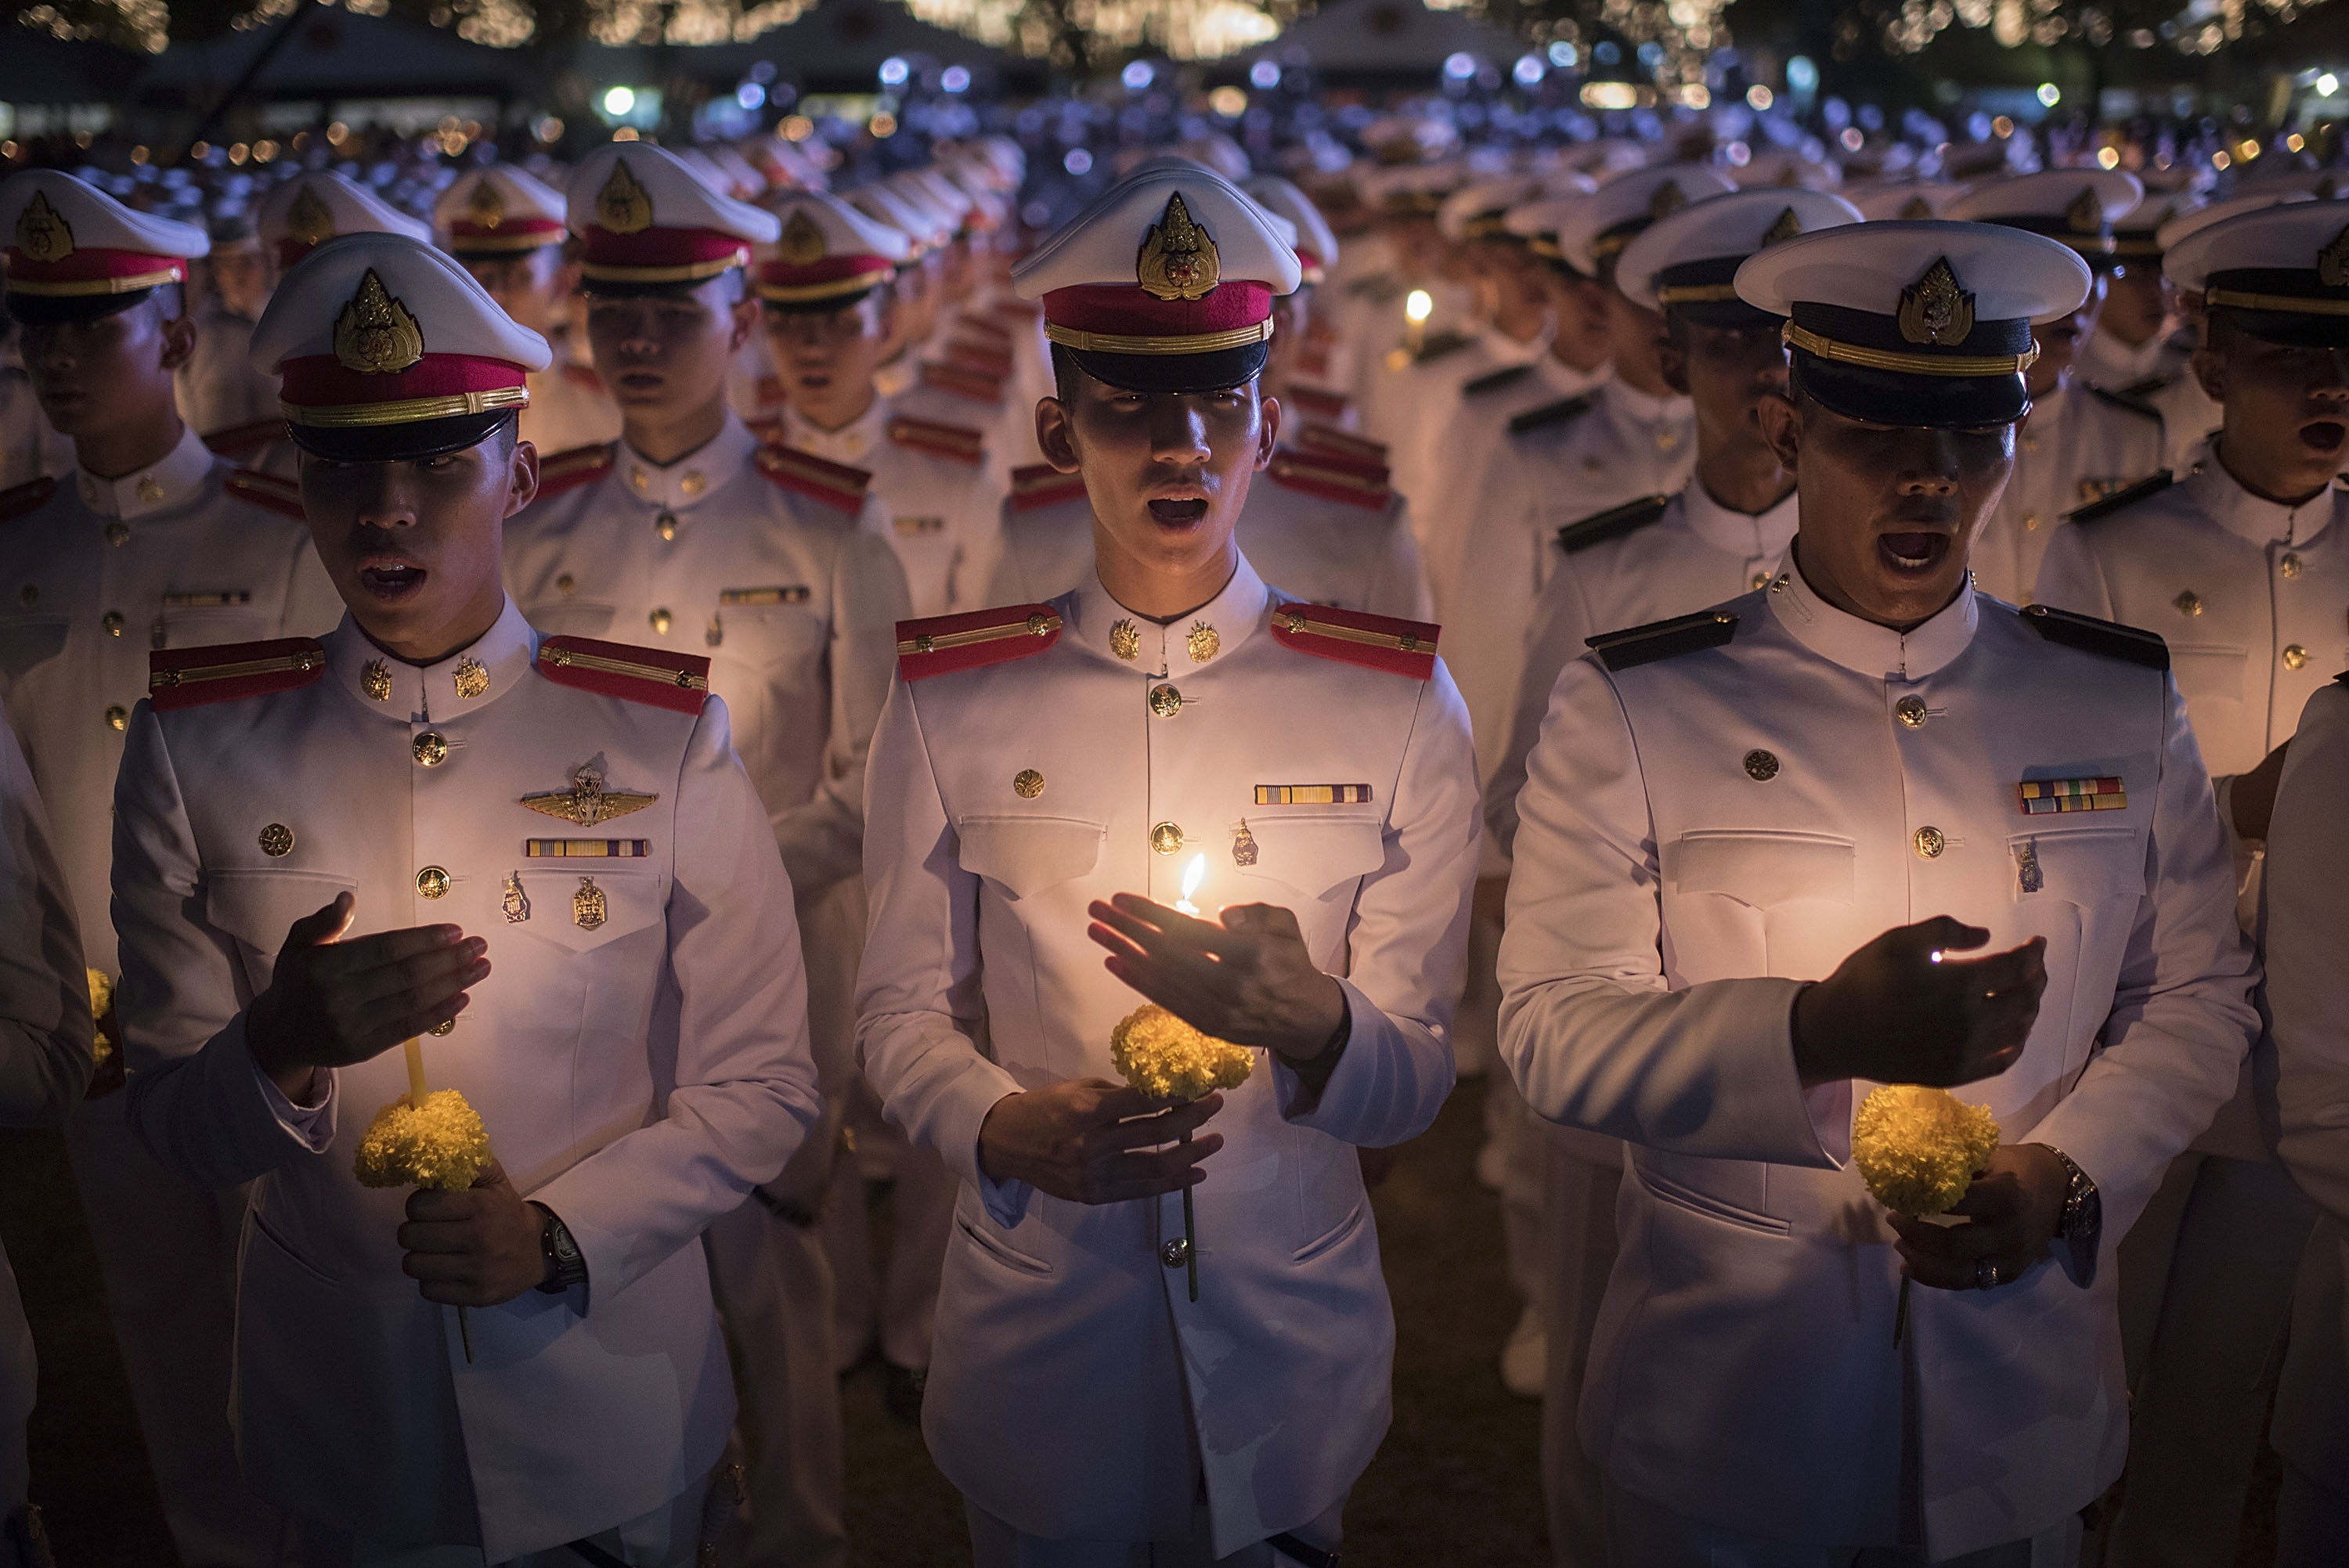 Thai soldiers hold candles during a massive candle light ceremony for King Bhumibol Adulyadej's birthday at Sanam Luang in Bangkok, on Dec. 5, 2015.